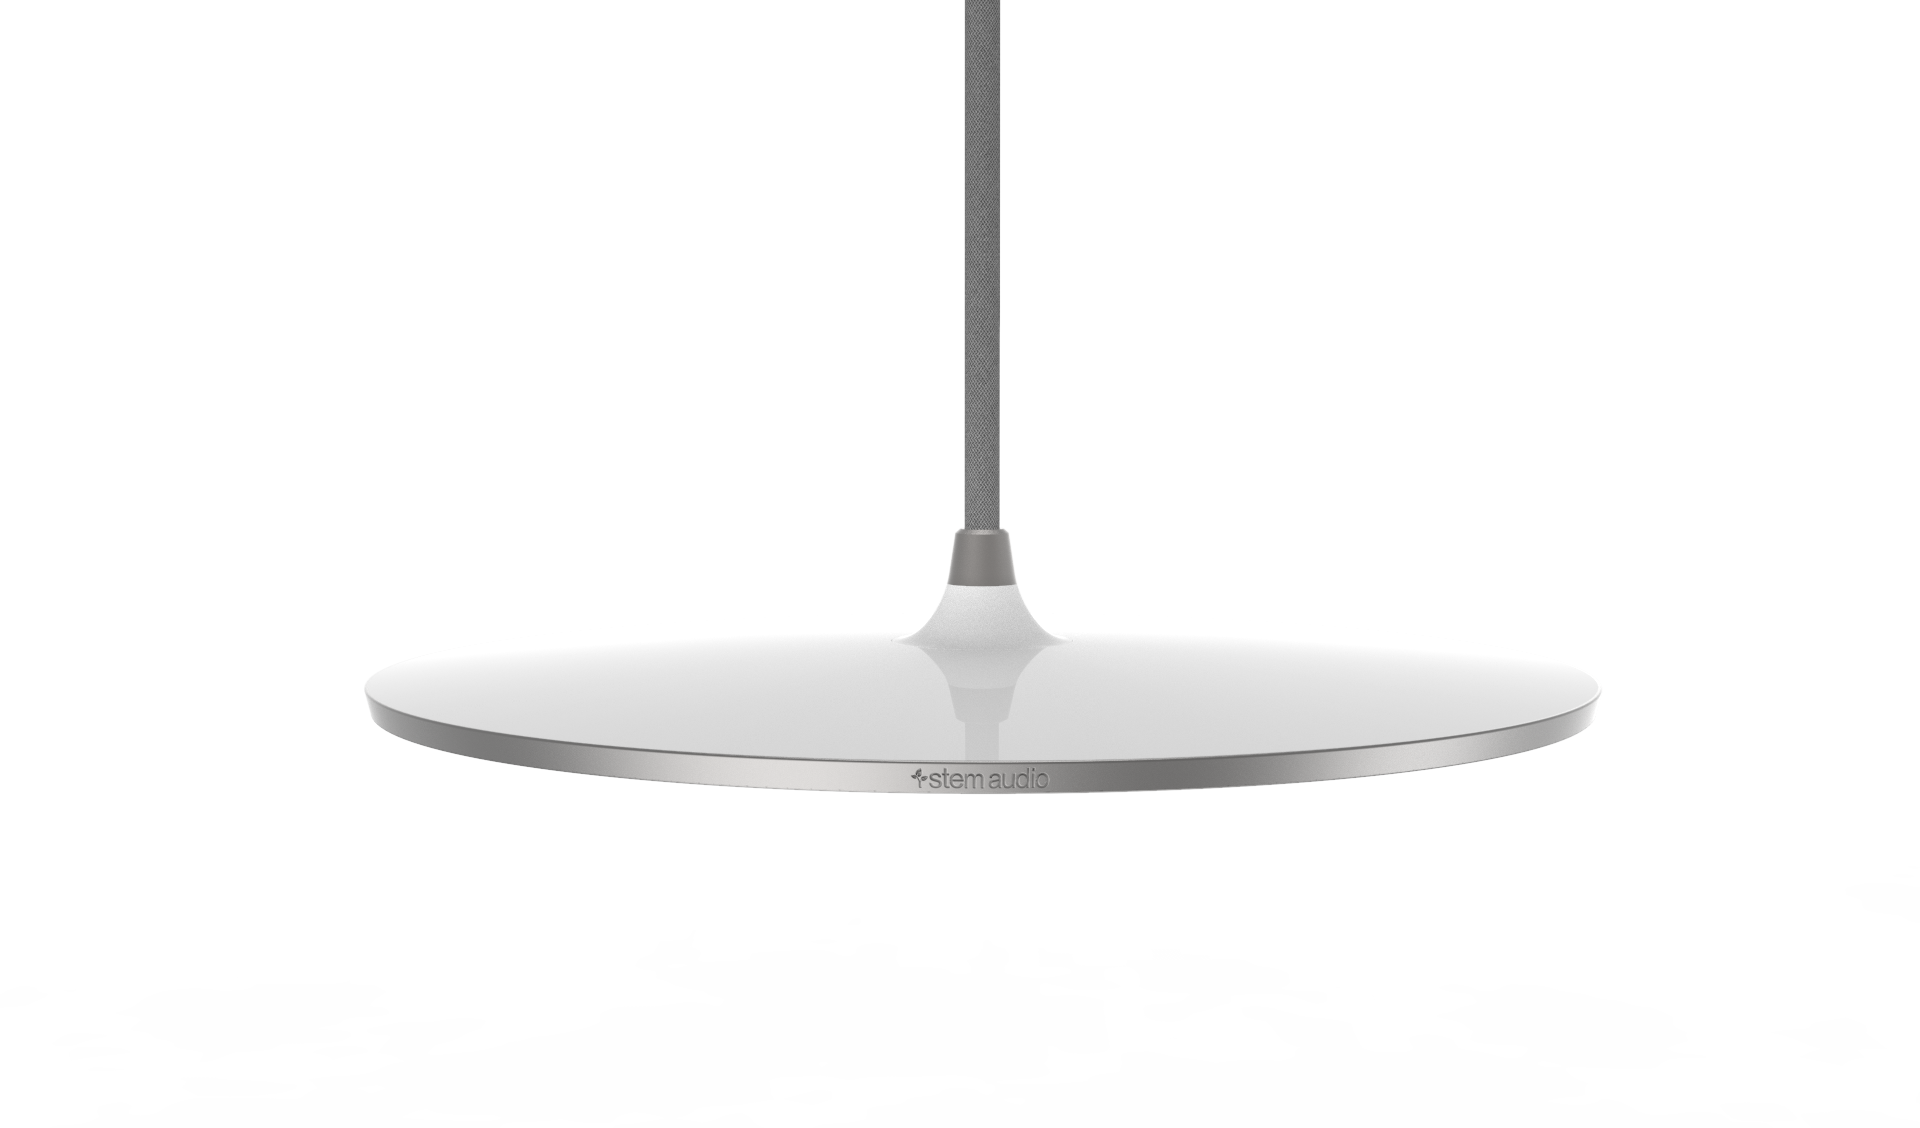 stem ceiling conference microphone